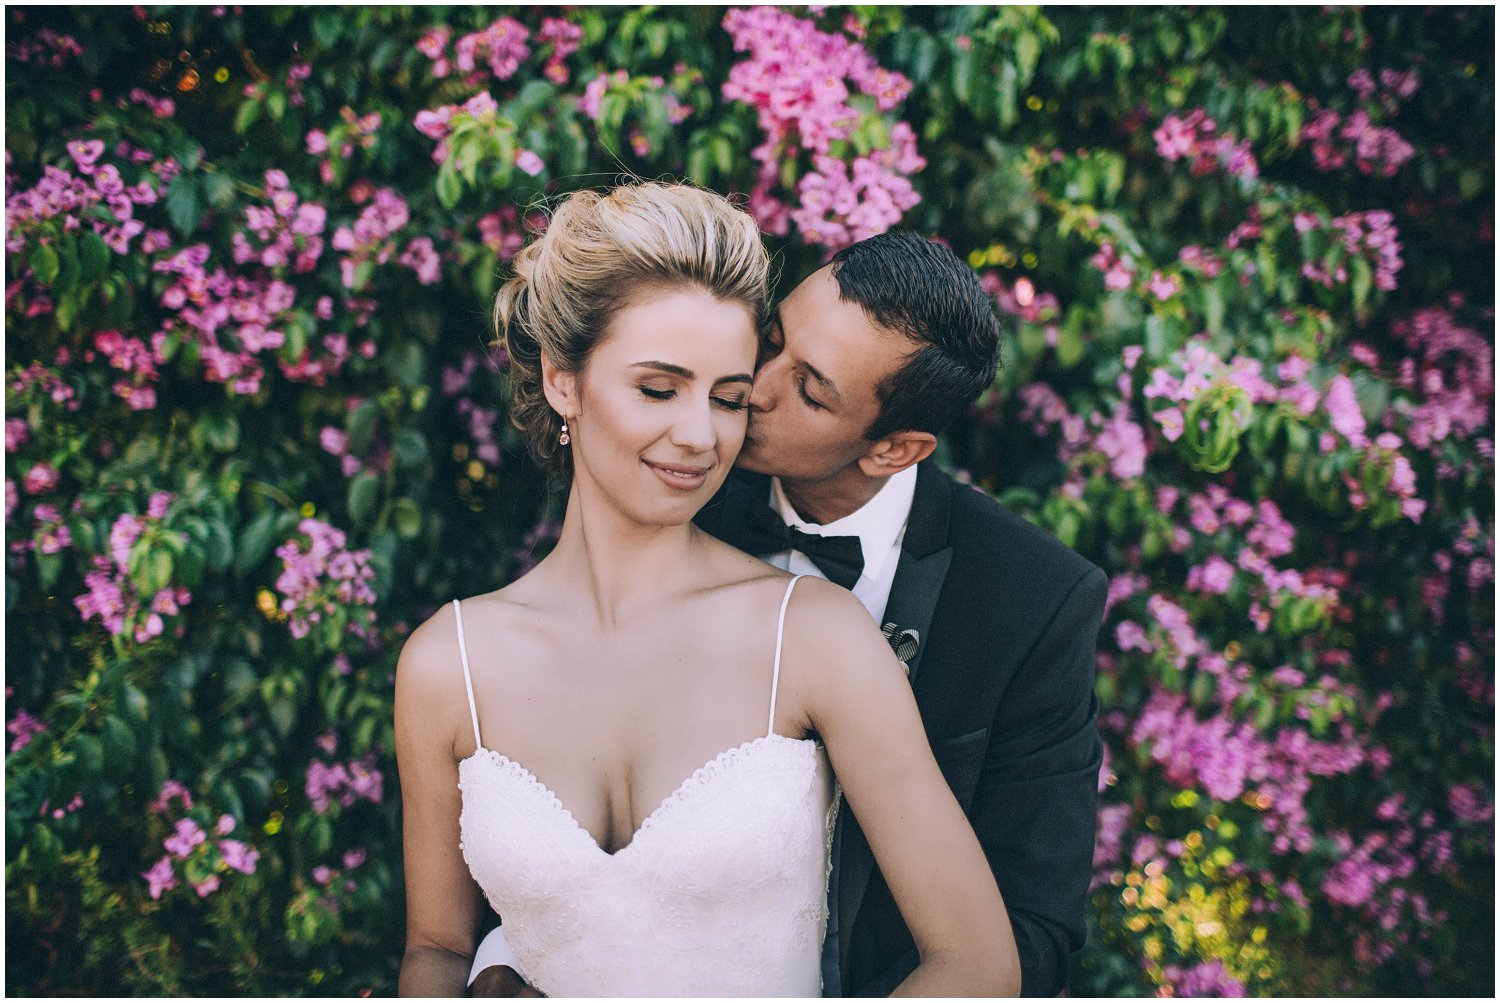 Top Artistic Creative Documentary Wedding Photographer Cape Town South Africa Rue Kruger_0139.jpg